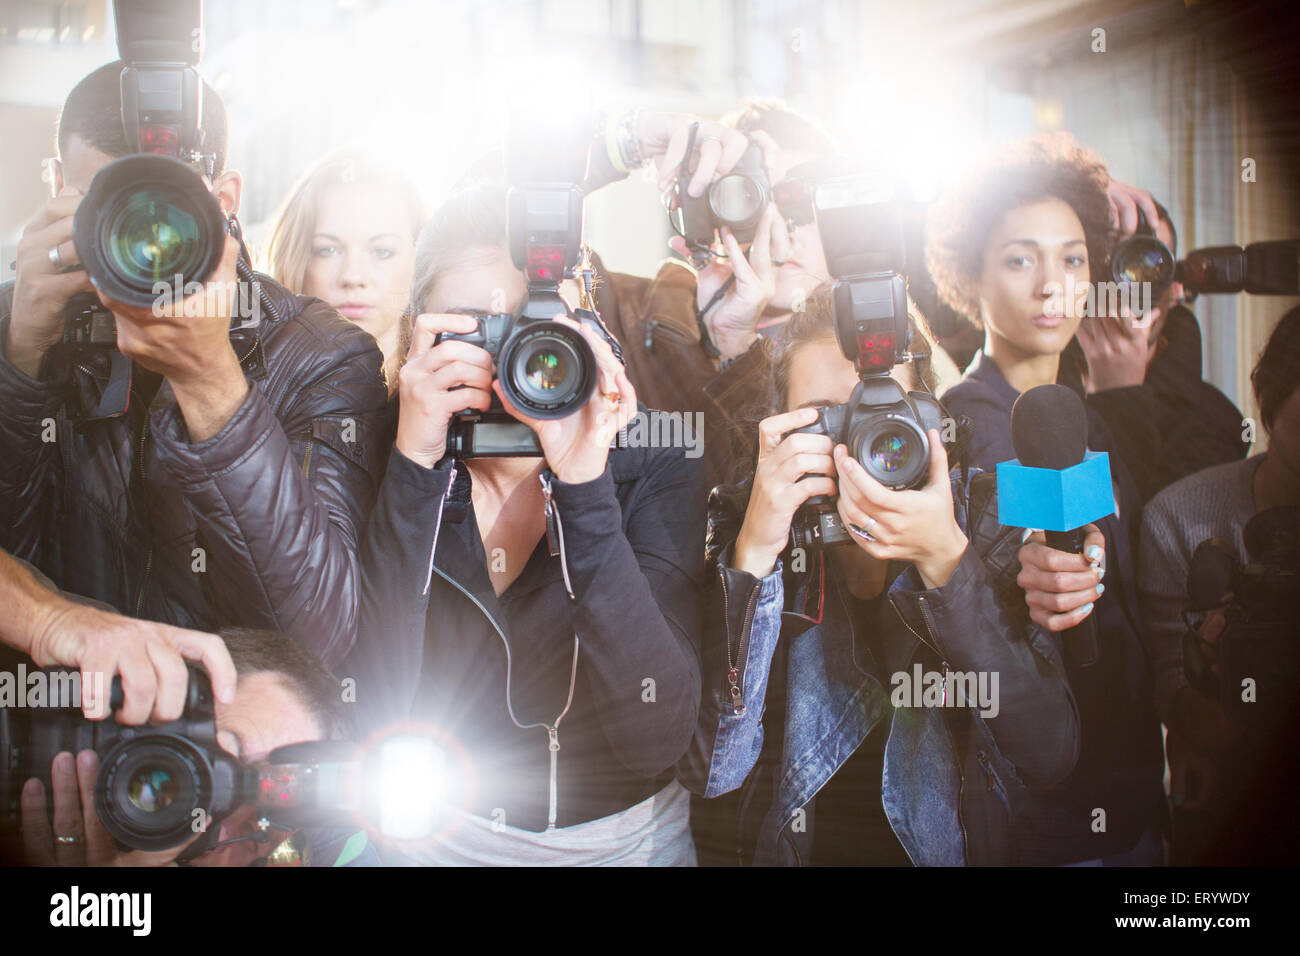 Portrait of serious paparazzi photographers pointing cameras - Stock Image